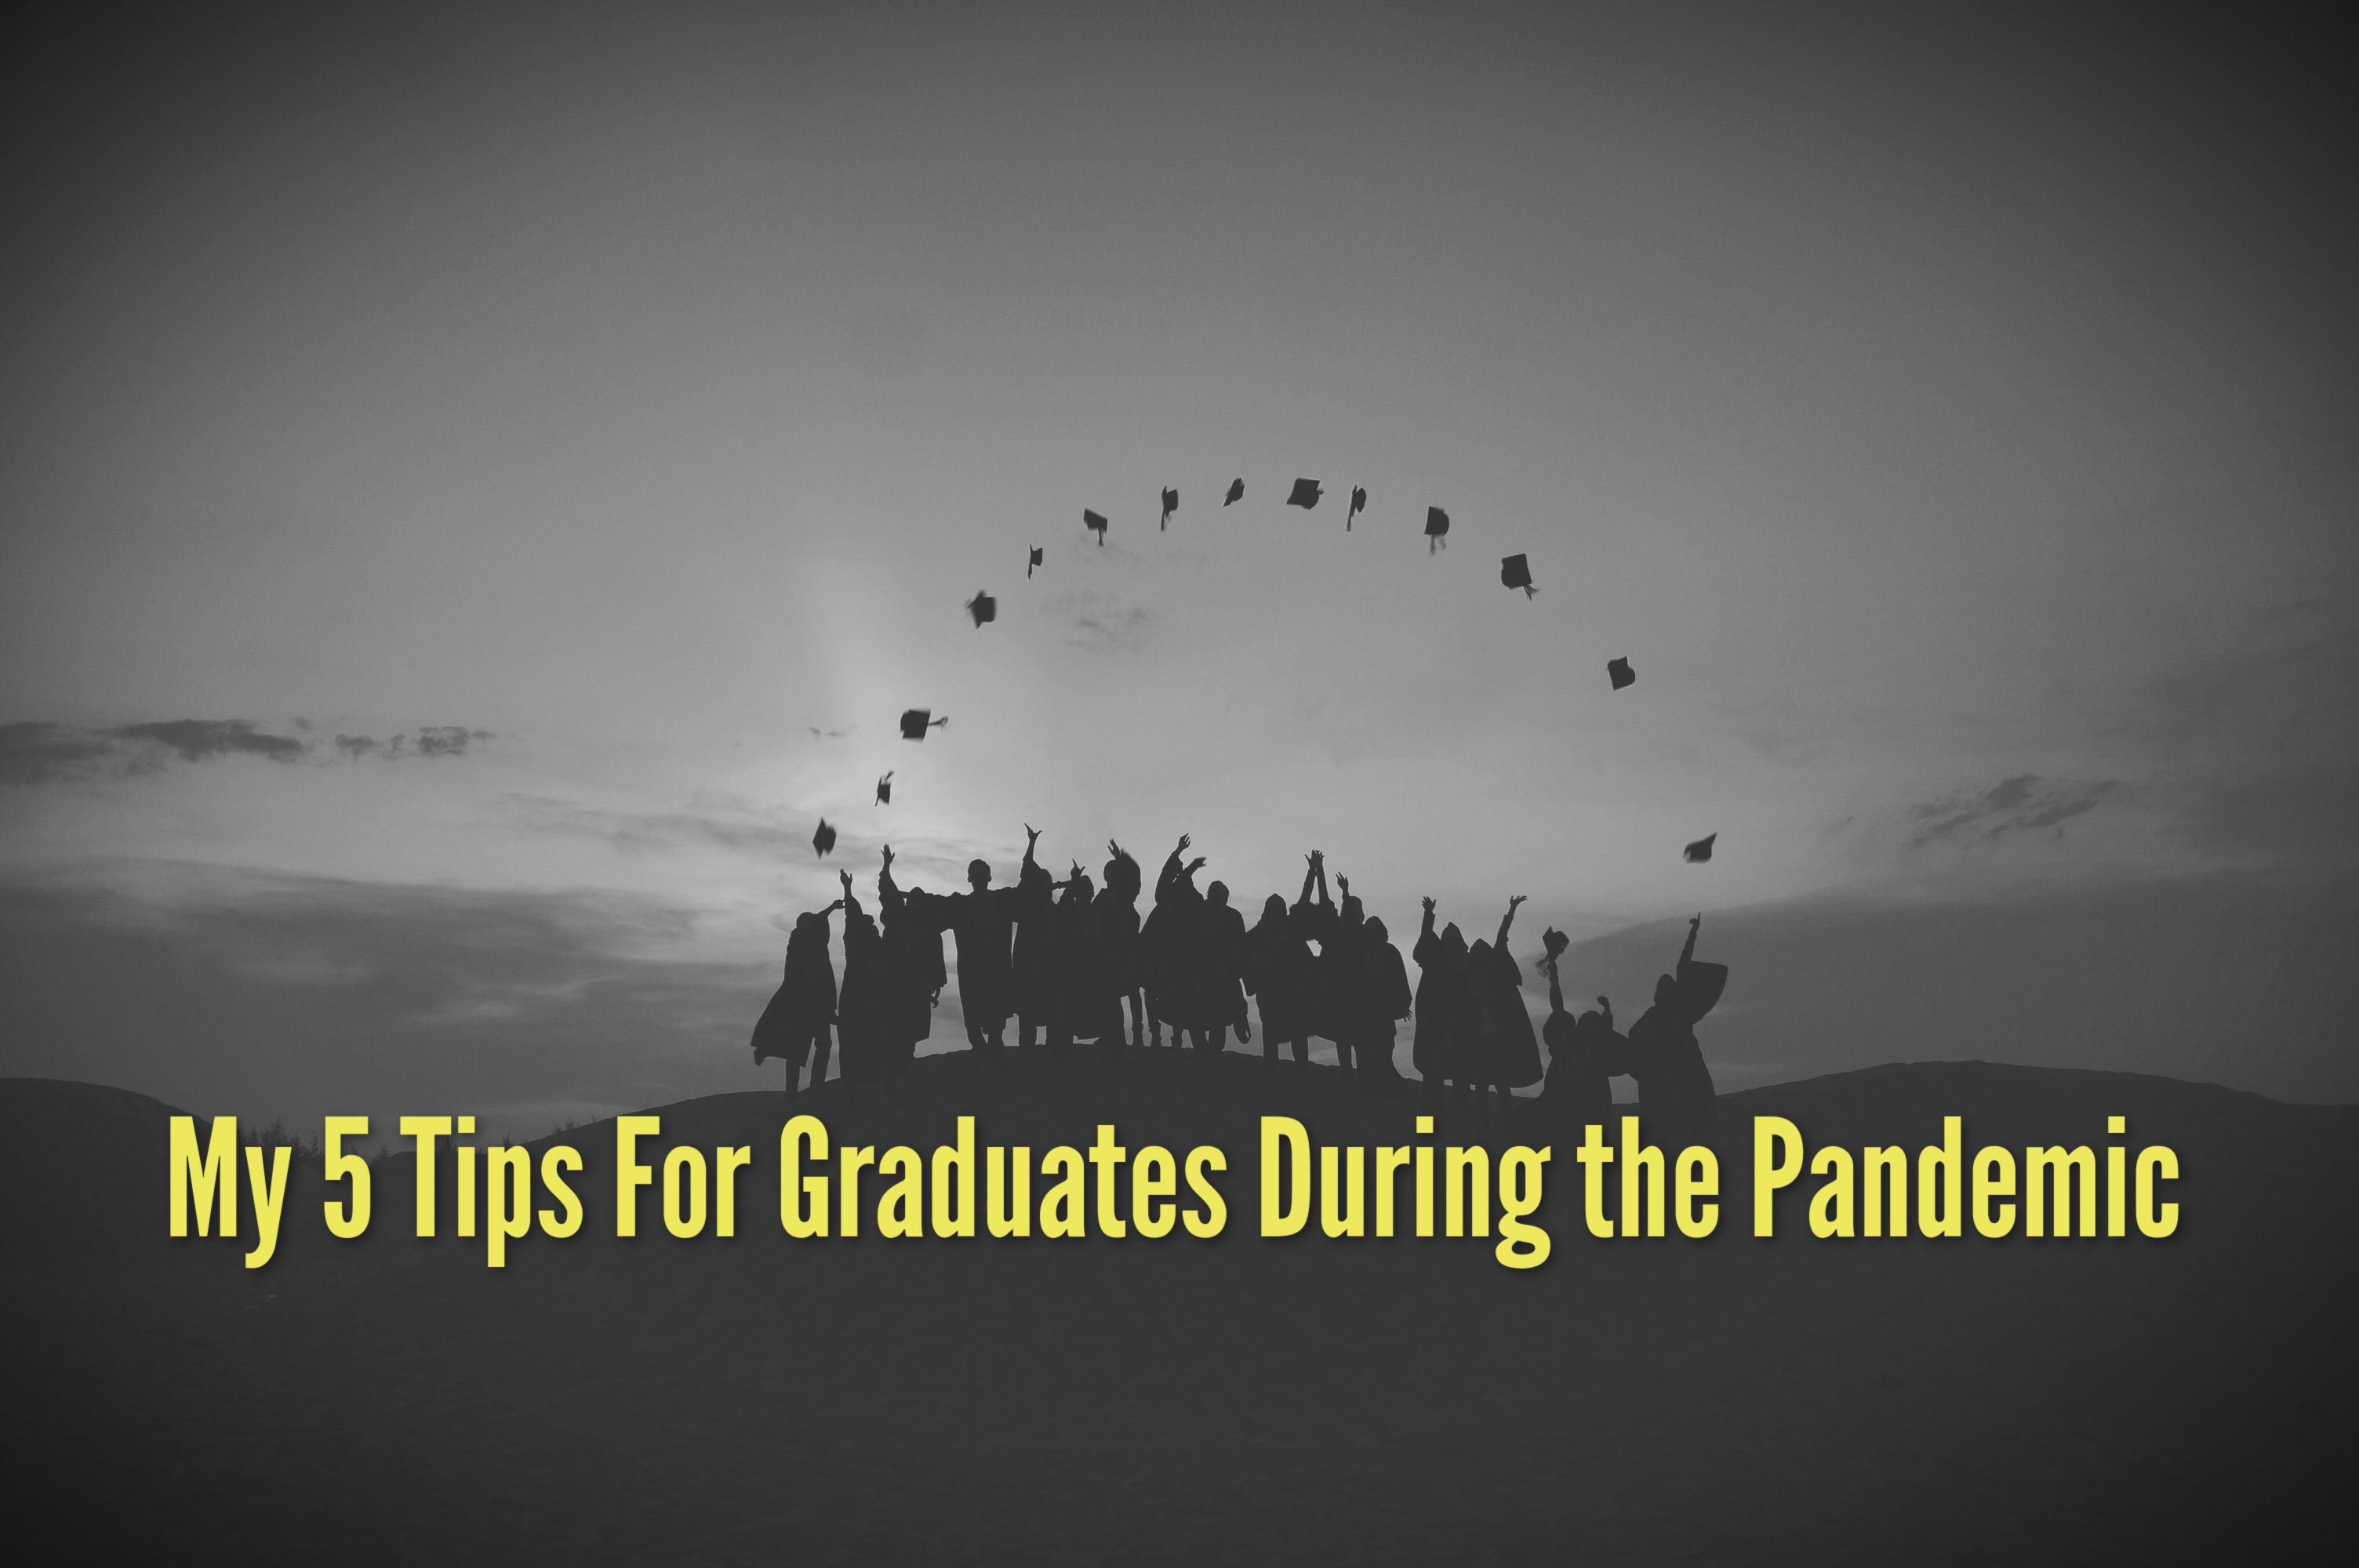 My 5 Tips For Graduates During the Pandemic